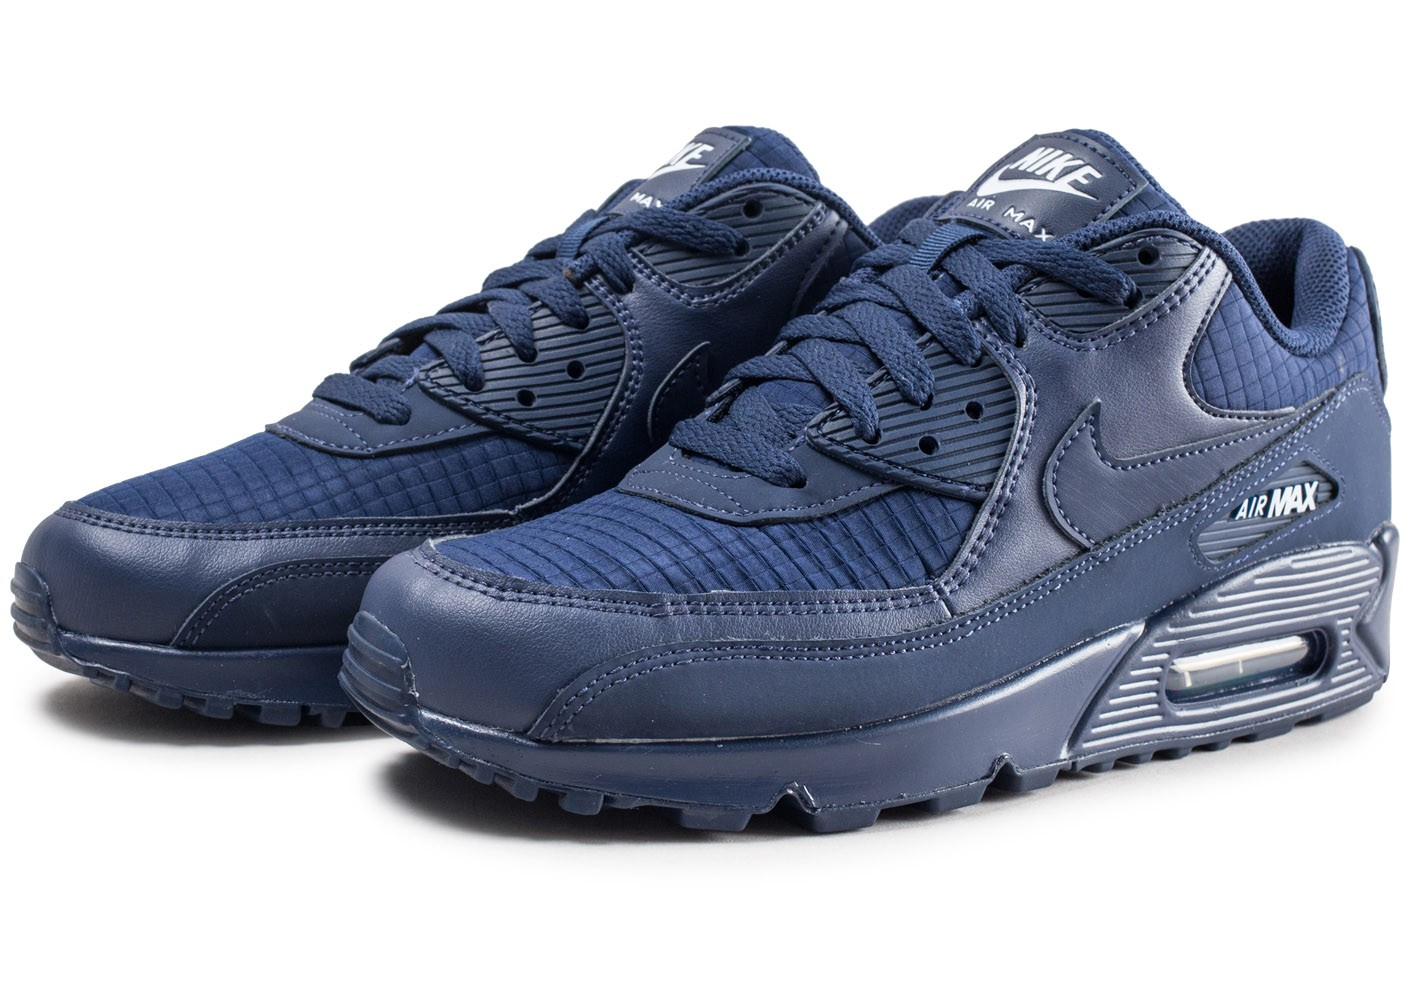 Nike Air Max 90 Essential bleu marine - Chaussures Baskets ...